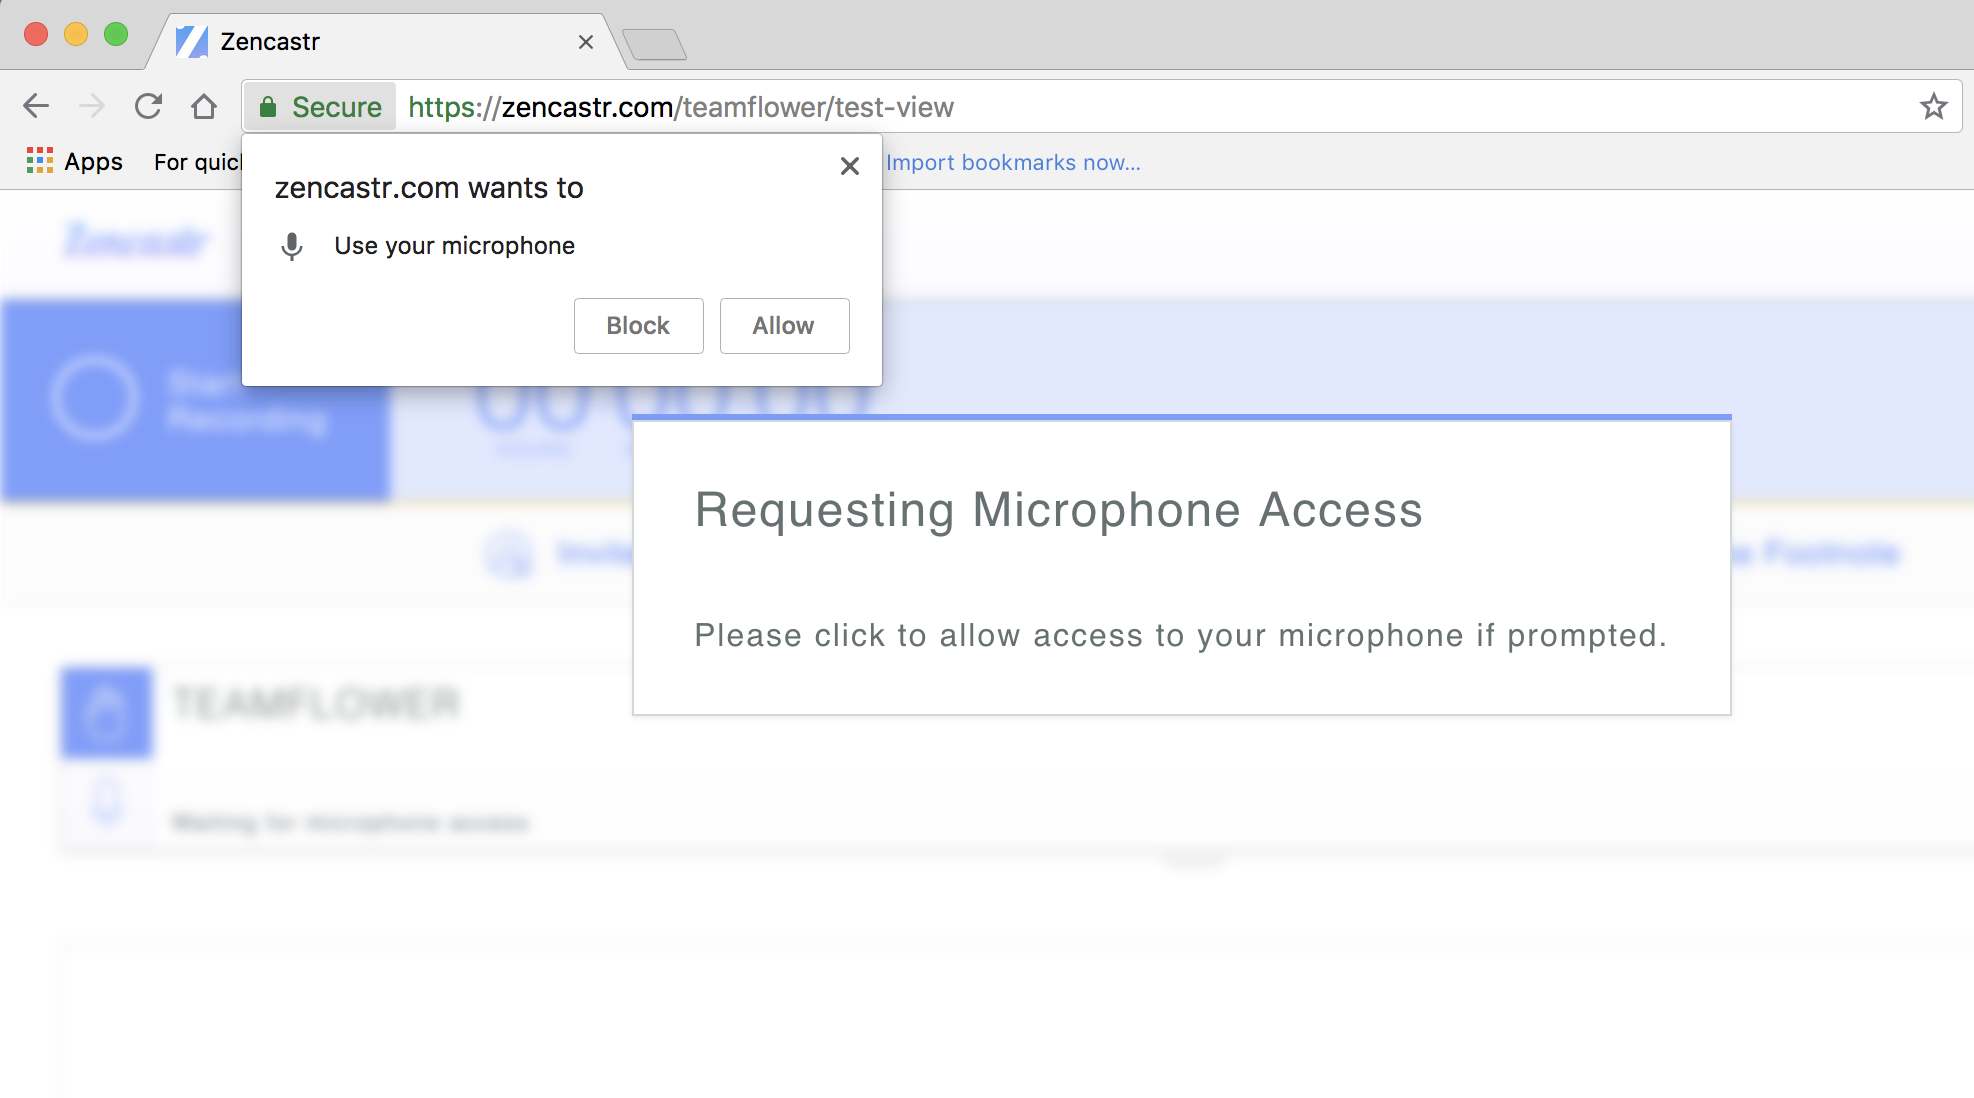 Step 1 - Allow microphone access when you first open the page using Chrome